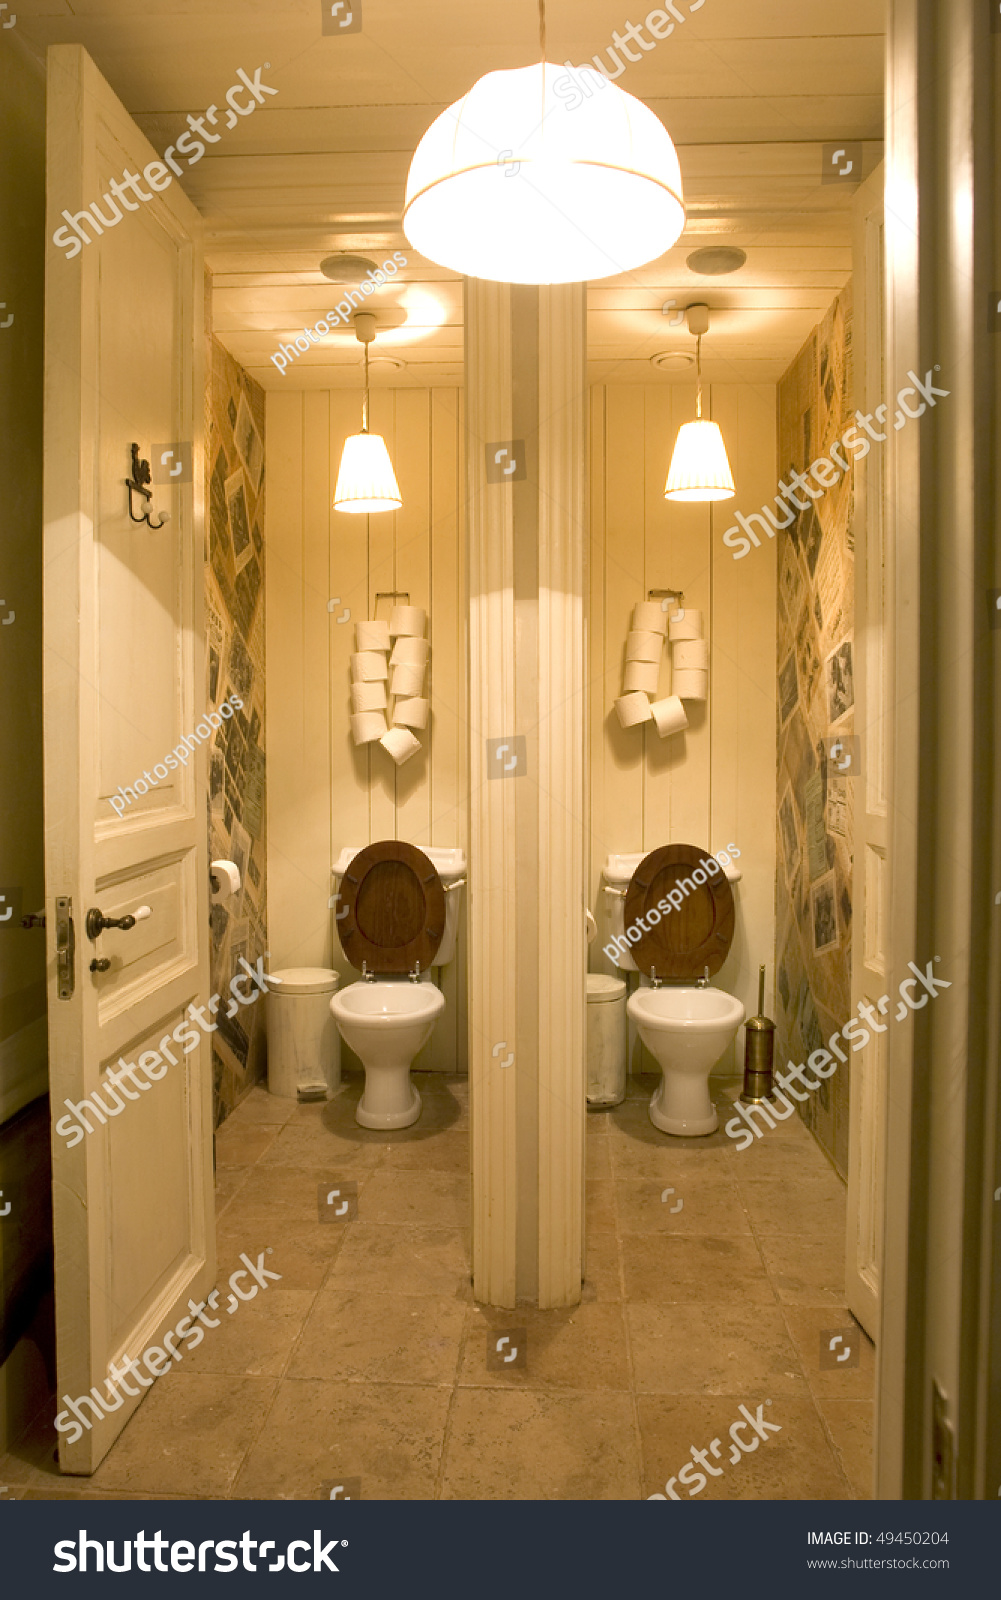 Bathroom In Public Place With Two Toilets Stock Photo